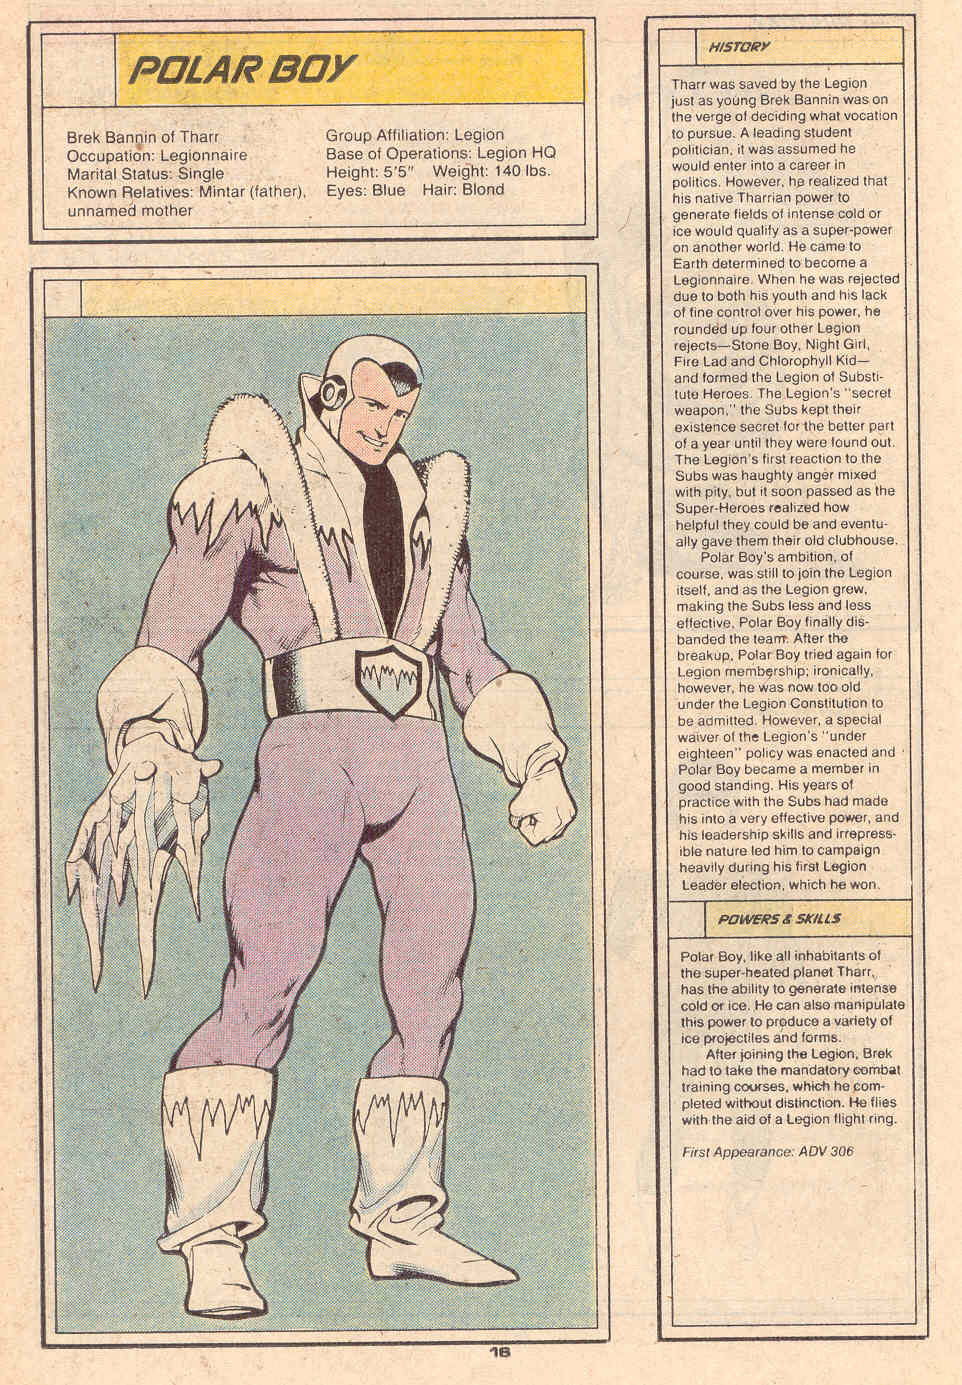 Polar Boy by Ty Templeton - Who's Who in the Legion of Super-Heroes #5